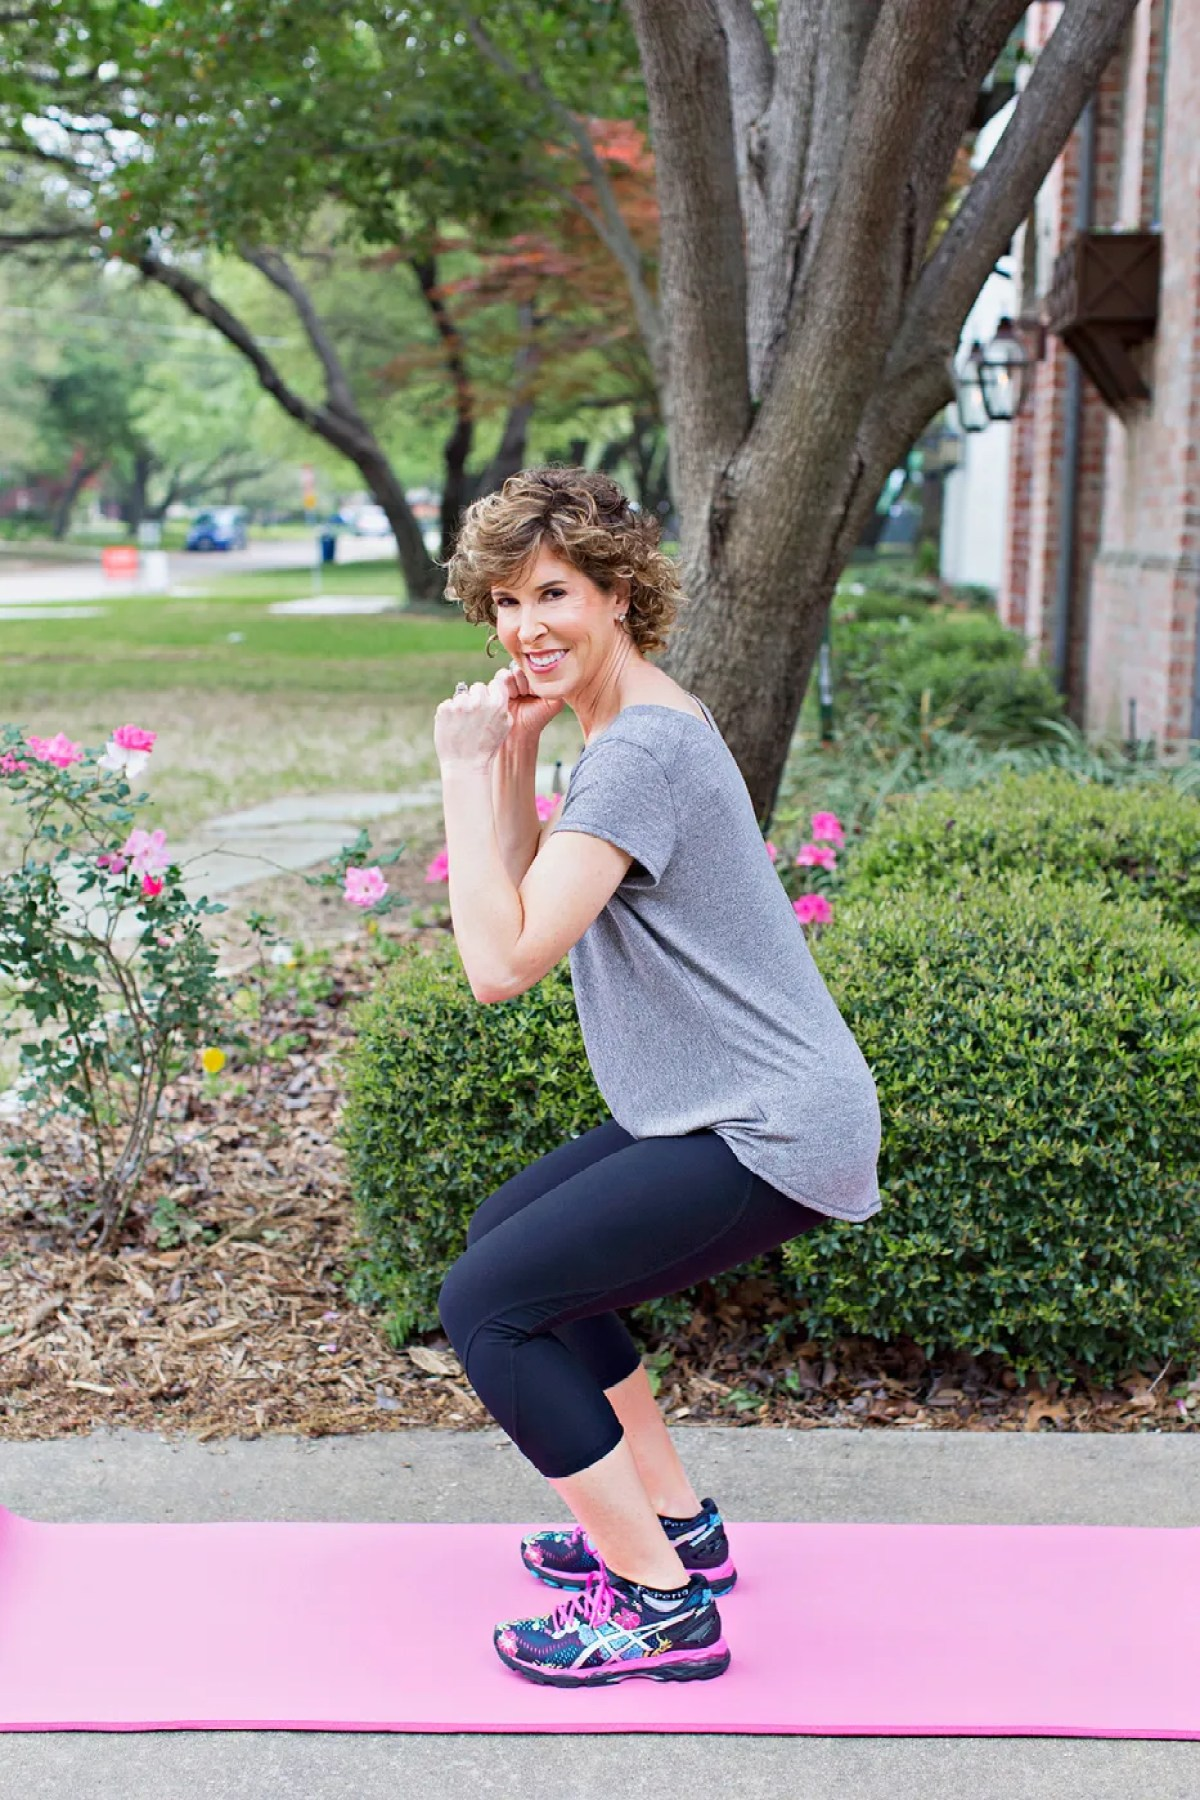 fitness over fifty, women's fitness over fifty, workout moves over fifty, over fifty fitness, strength training over fifty